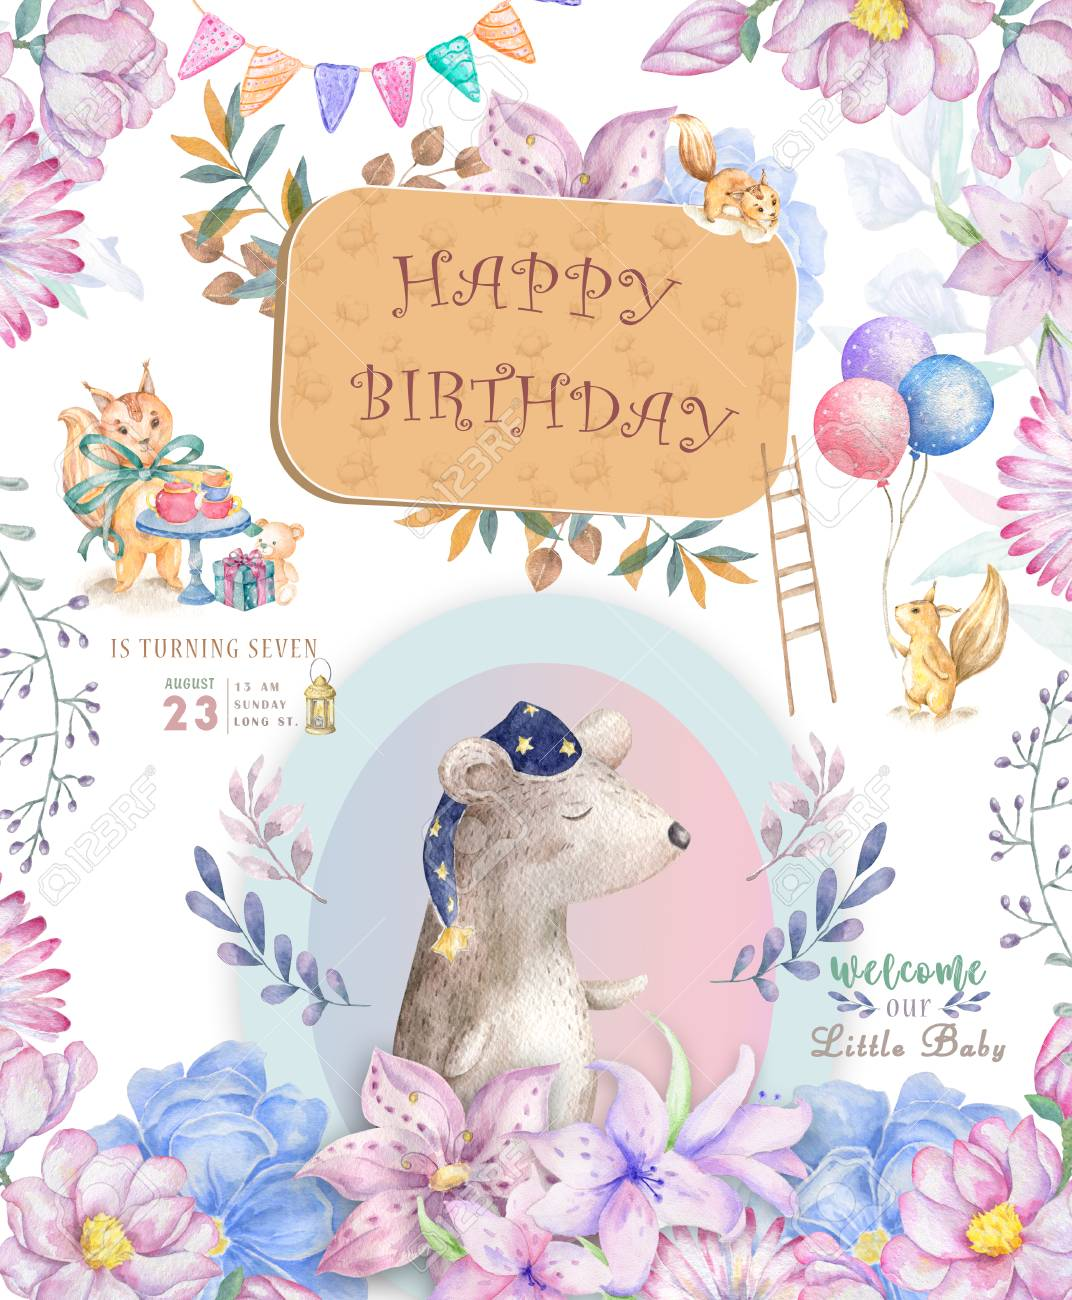 Happy Birthday Card With Cute Tiger Watercolor Animal Baby Greeting Boho Flowers